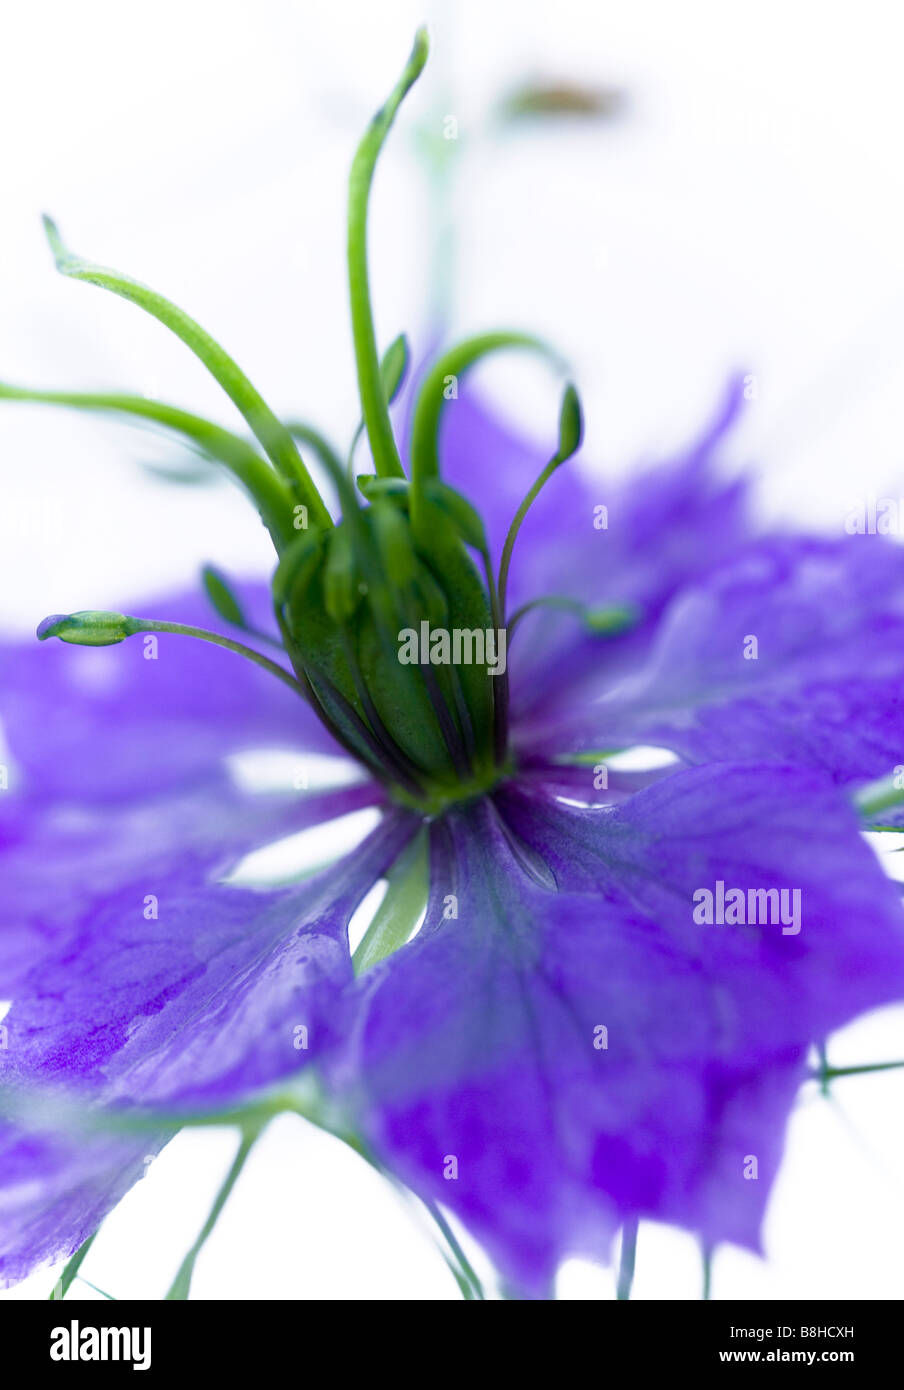 Common name: Love in a mist. Latin name: Nigellla - Stock Image